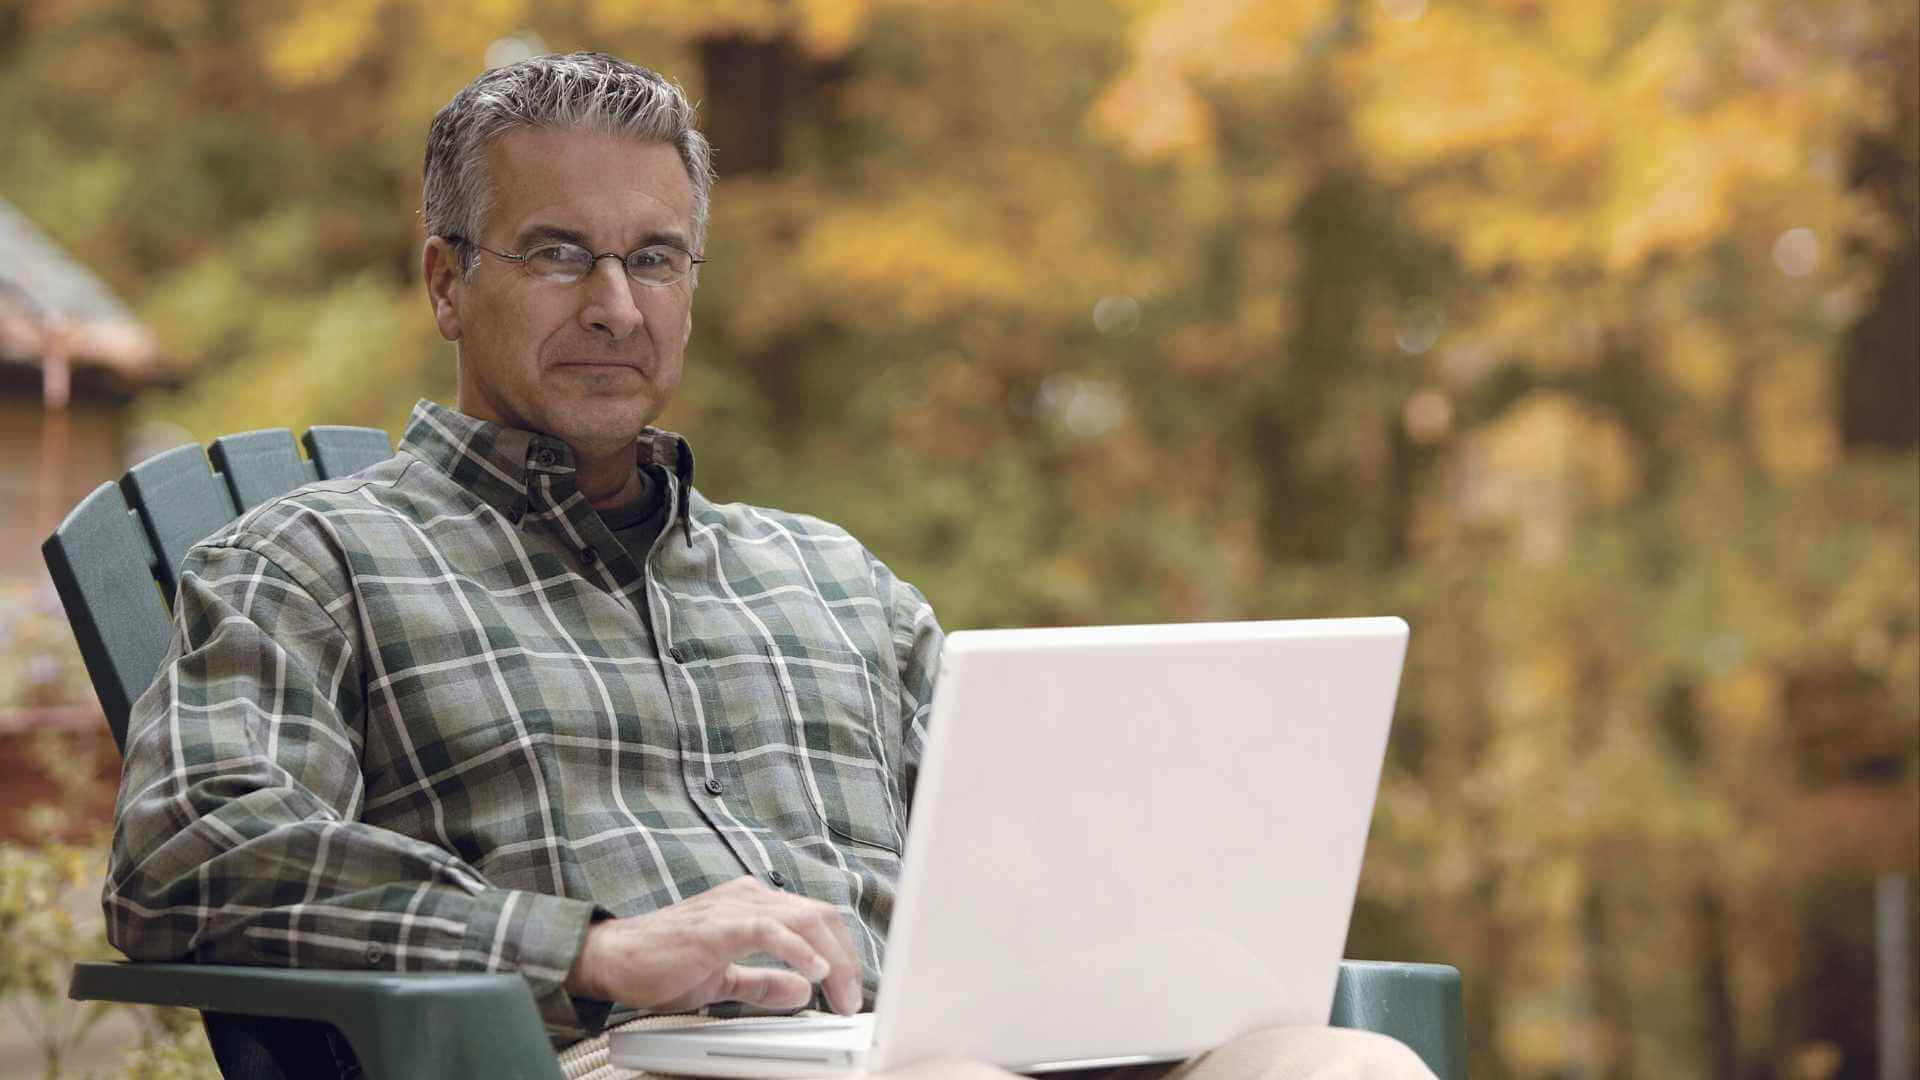 men using his laptop by the yard